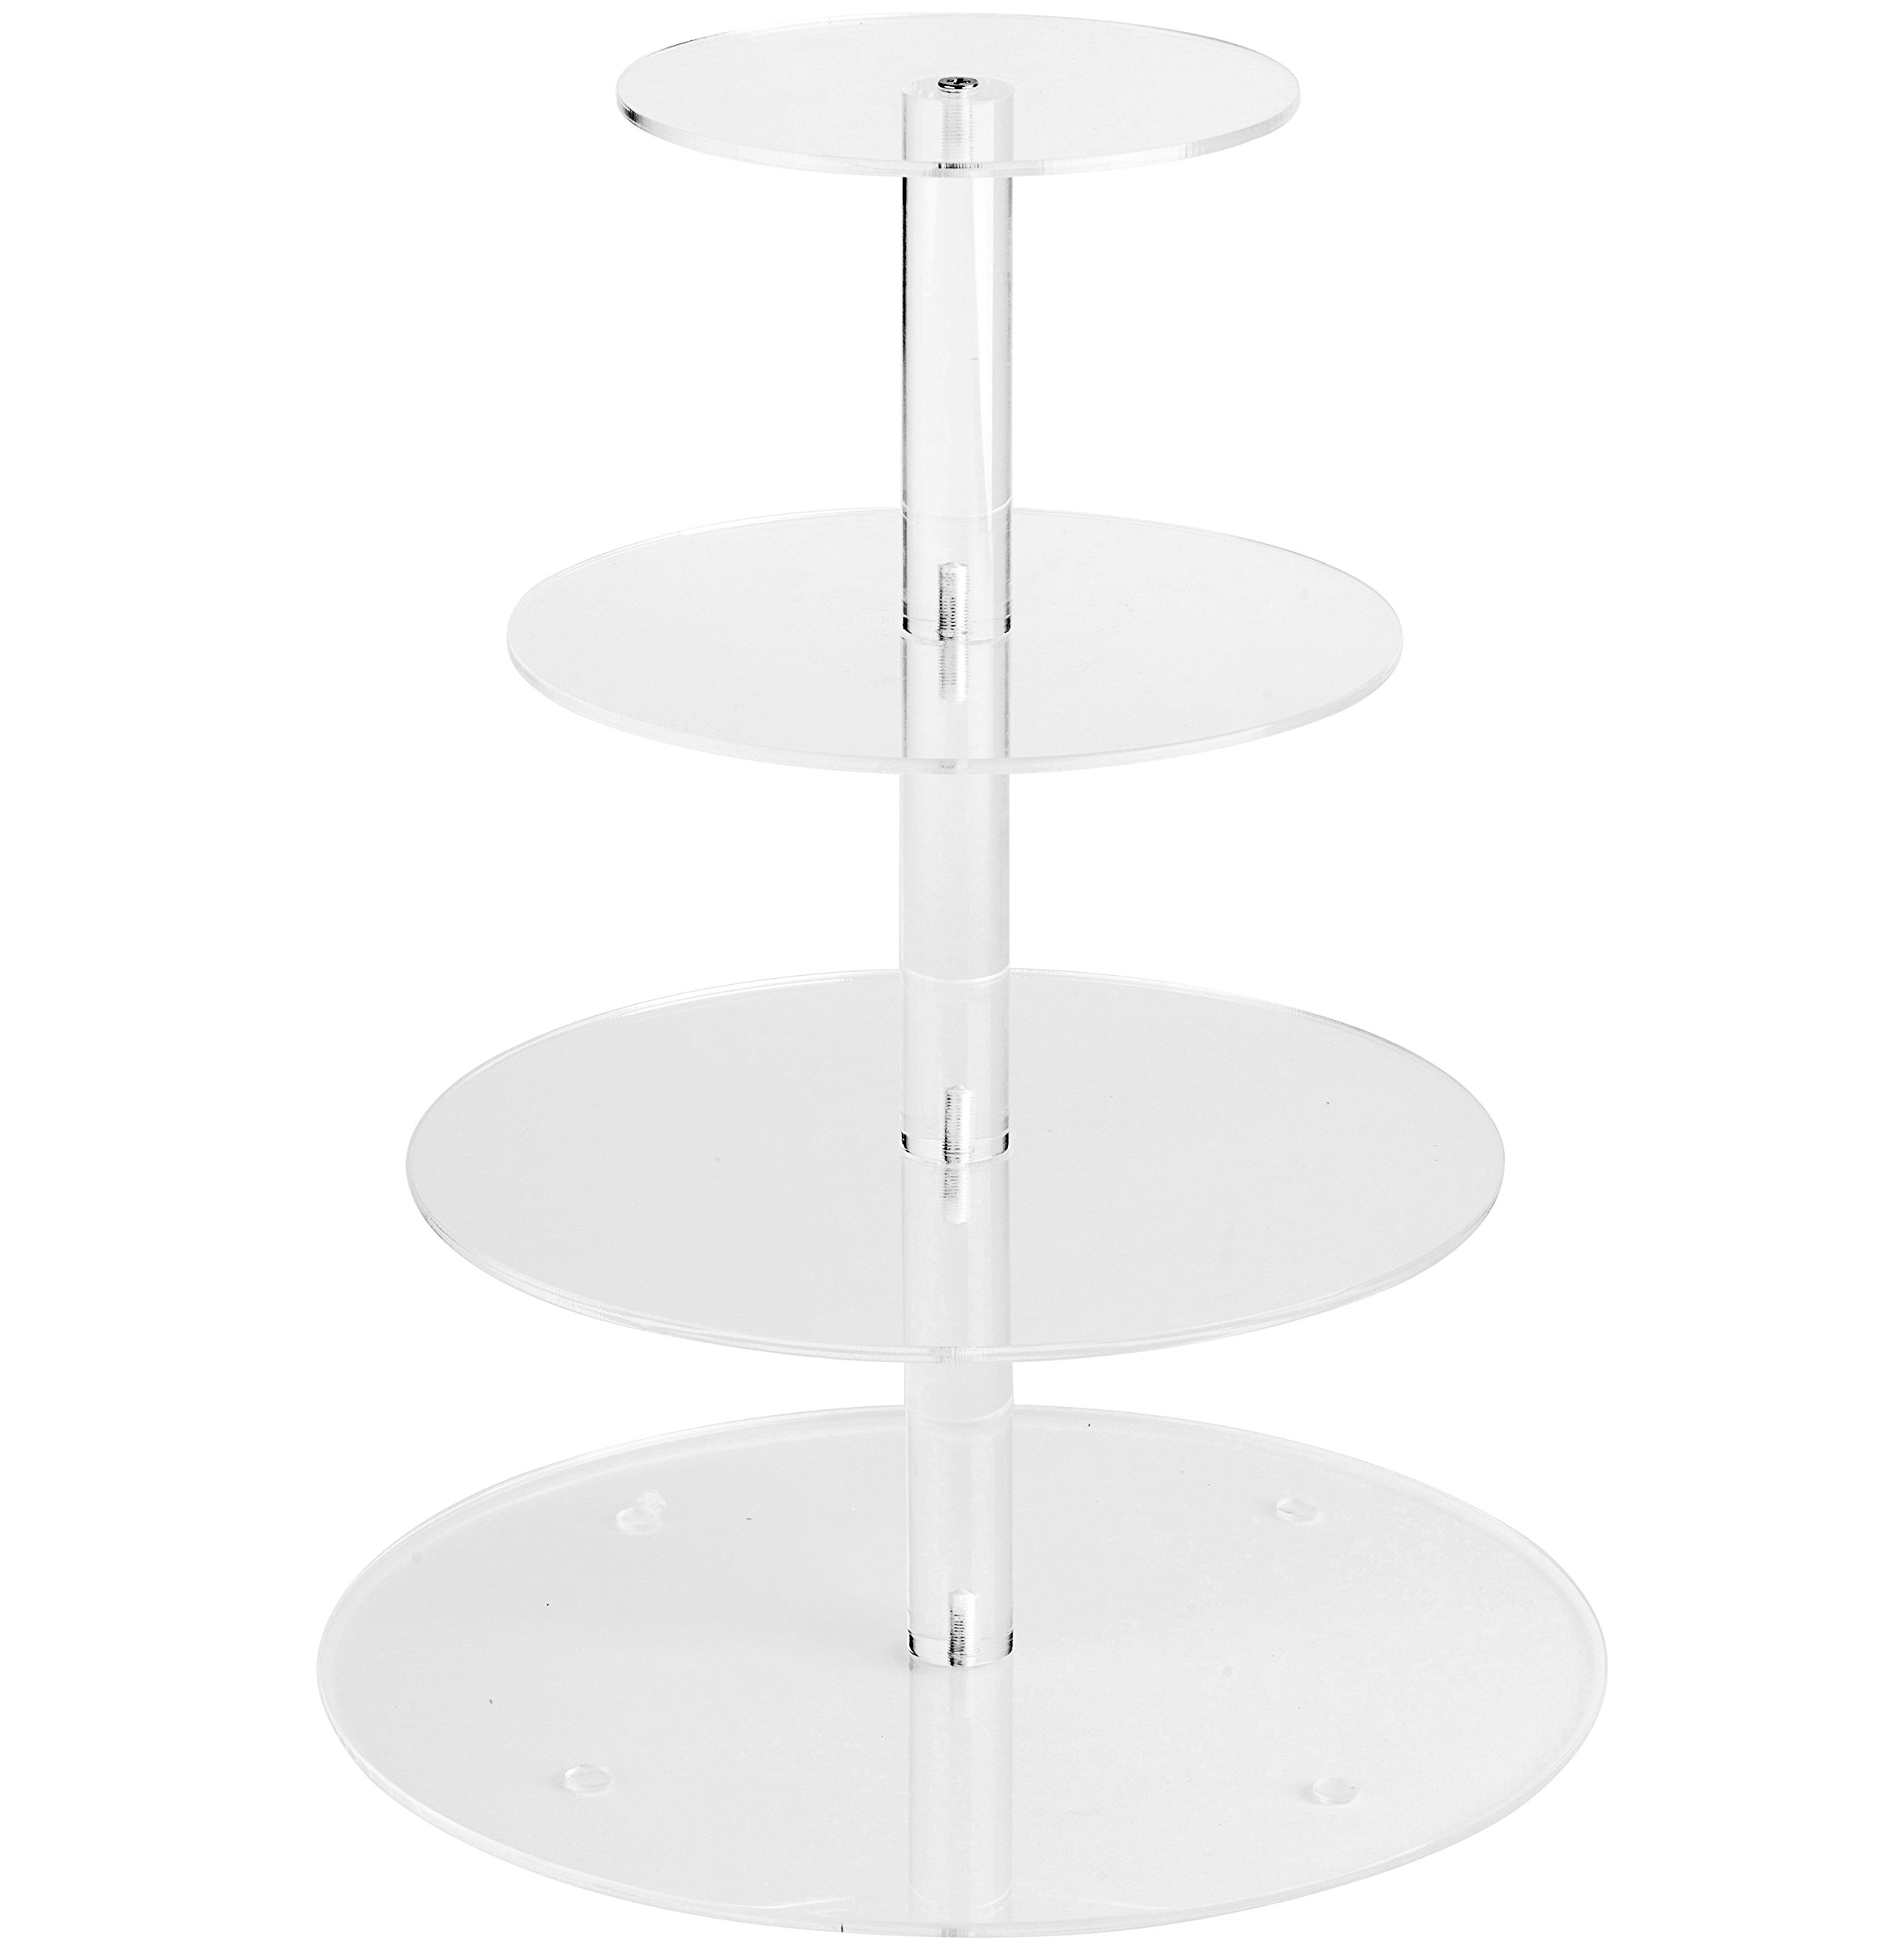 YestBuy 4 Tier Maypole Round Wedding Party Tree Tower Acrylic Cupcake Display Stand (15.1 Inches)